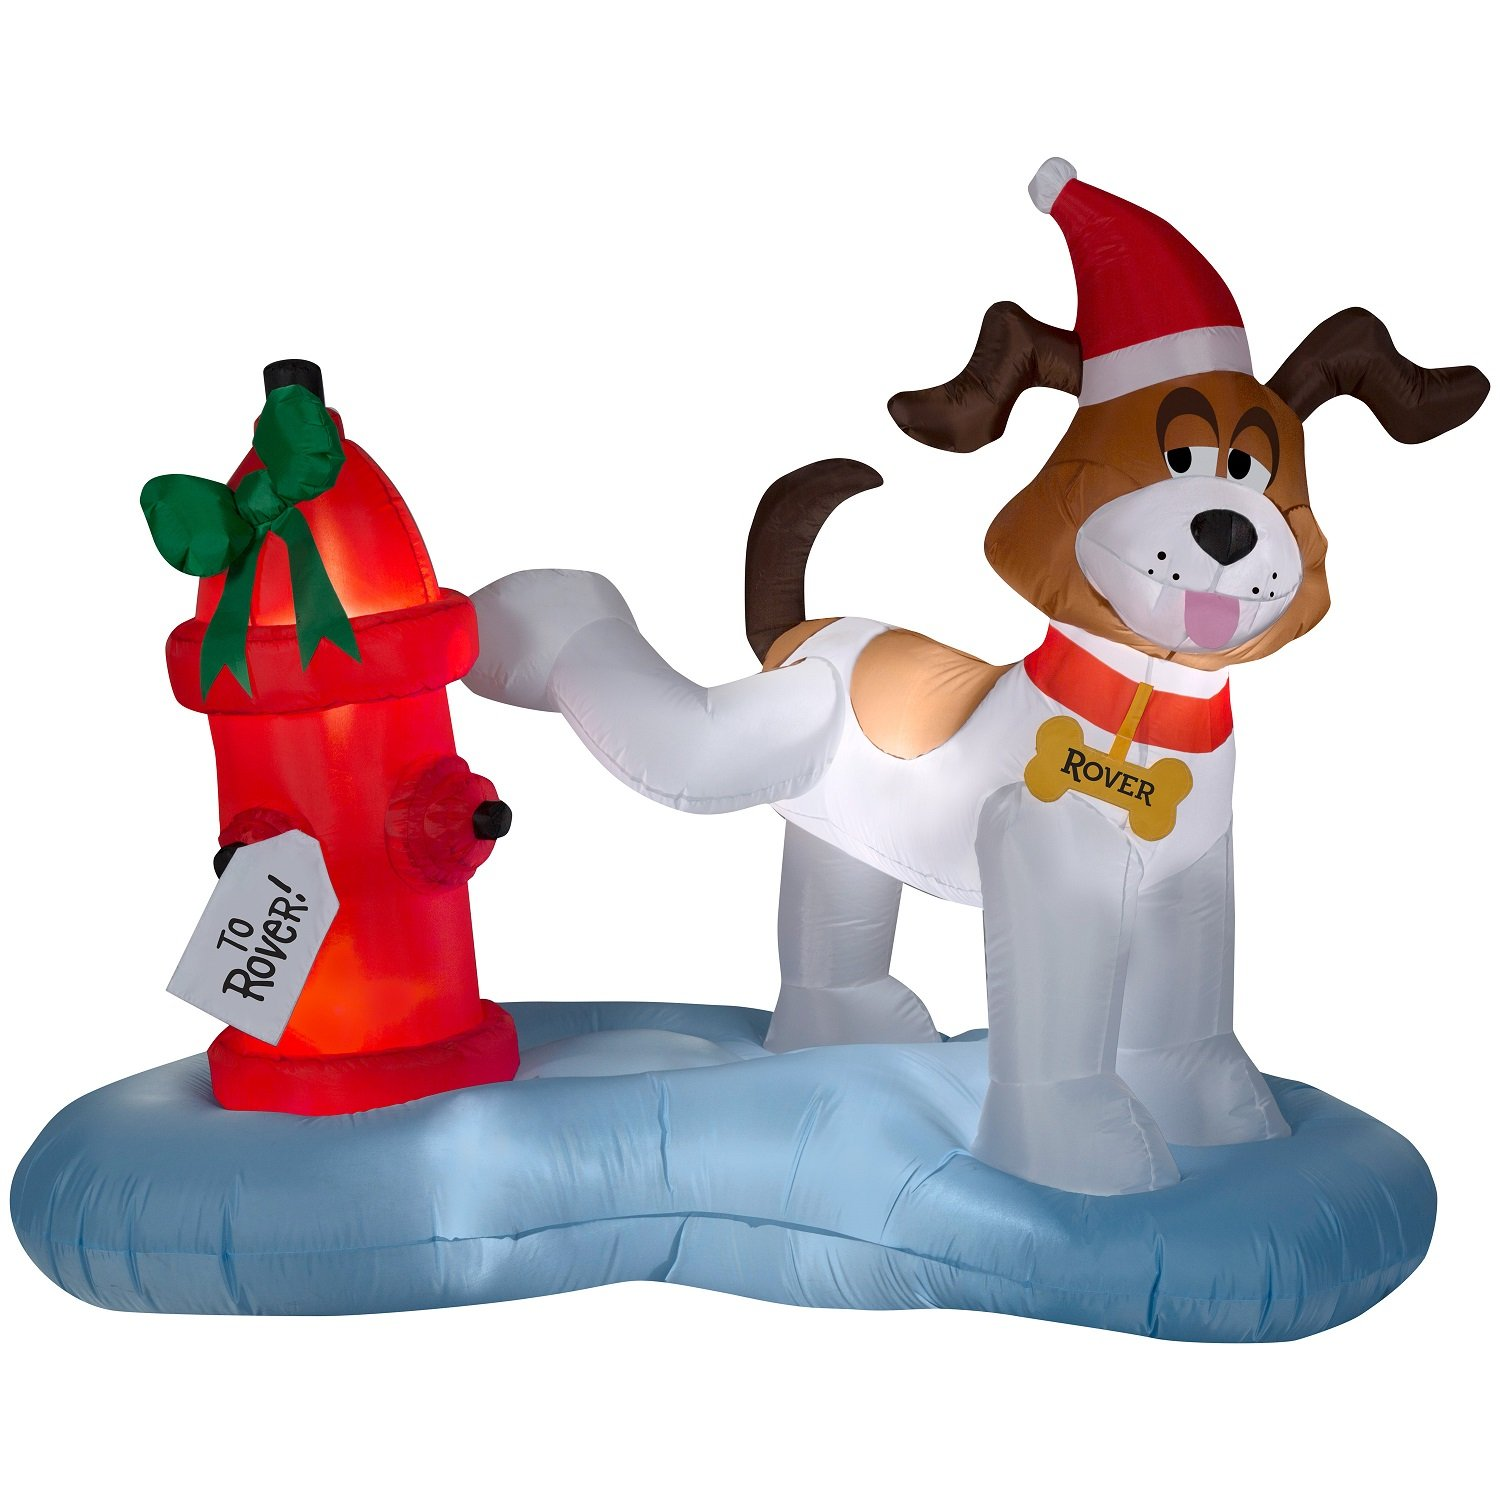 Christmas Inflatable Whimsical Dog Peeing On Fire Hydrant Gift By Gemmy